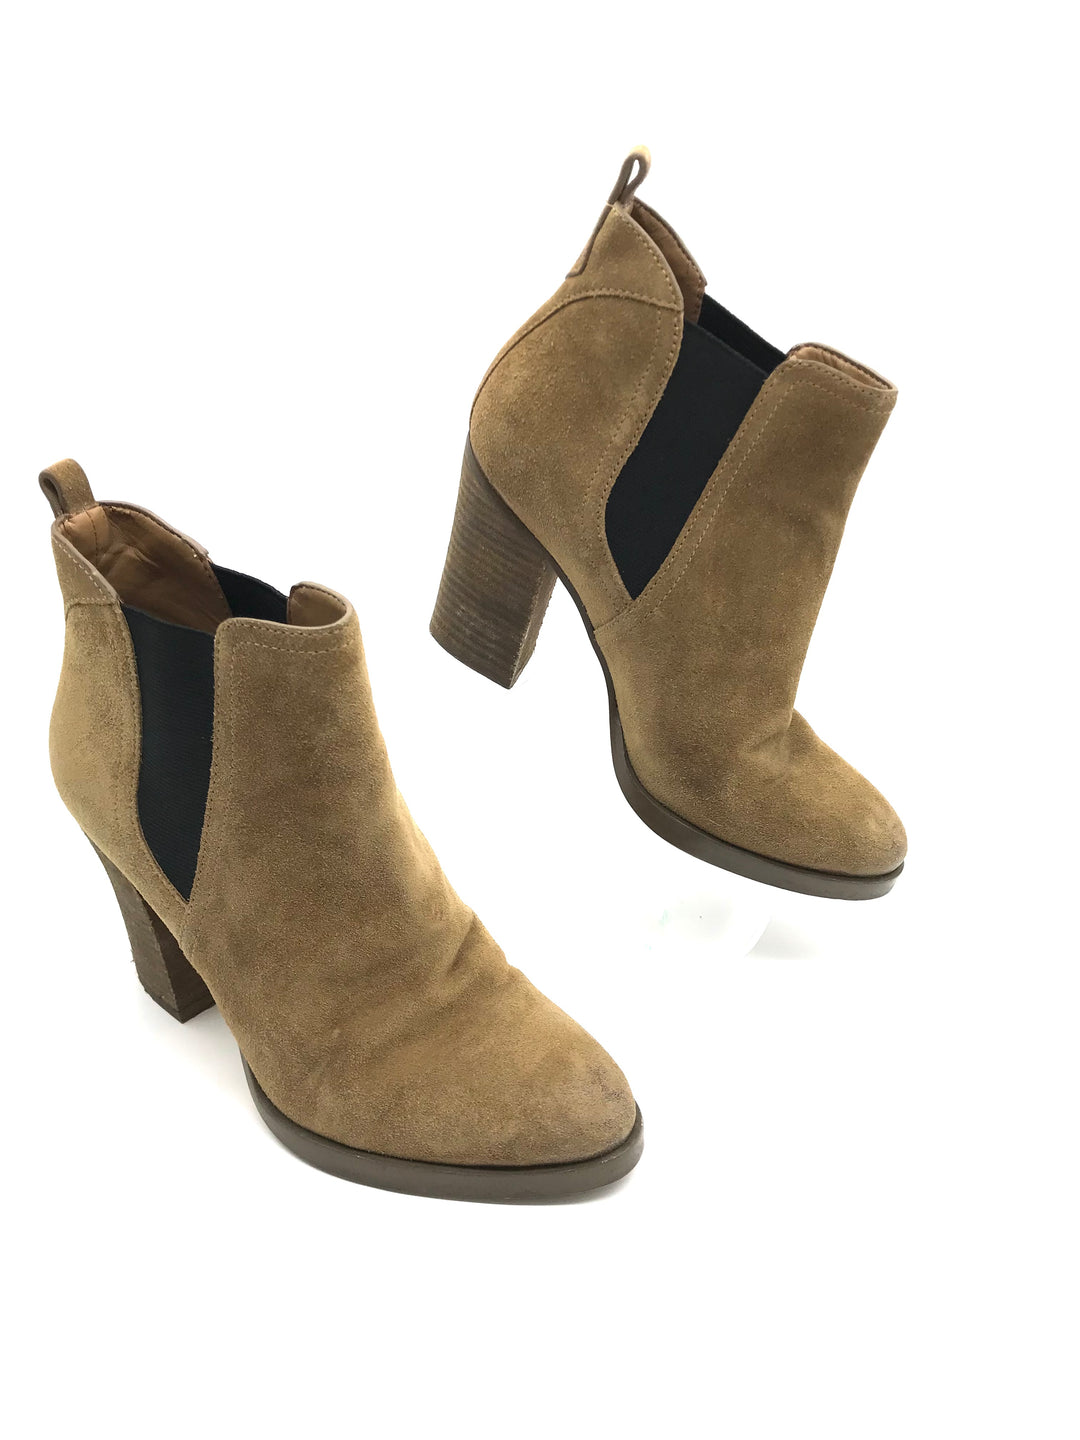 Primary Photo - BRAND: MARC FISHER <BR>STYLE: BOOTS ANKLE <BR>COLOR: BROWN <BR>SIZE: 7 <BR>SKU: 262-262101-1906<BR>SLIGHT SCRATH ON TOE AREA • GENTLE WEAR SHOWS • GENTLE TEAR IN THE INTERIOR LINING • GENTLE SCUFFS ON THE OUTSOLES •